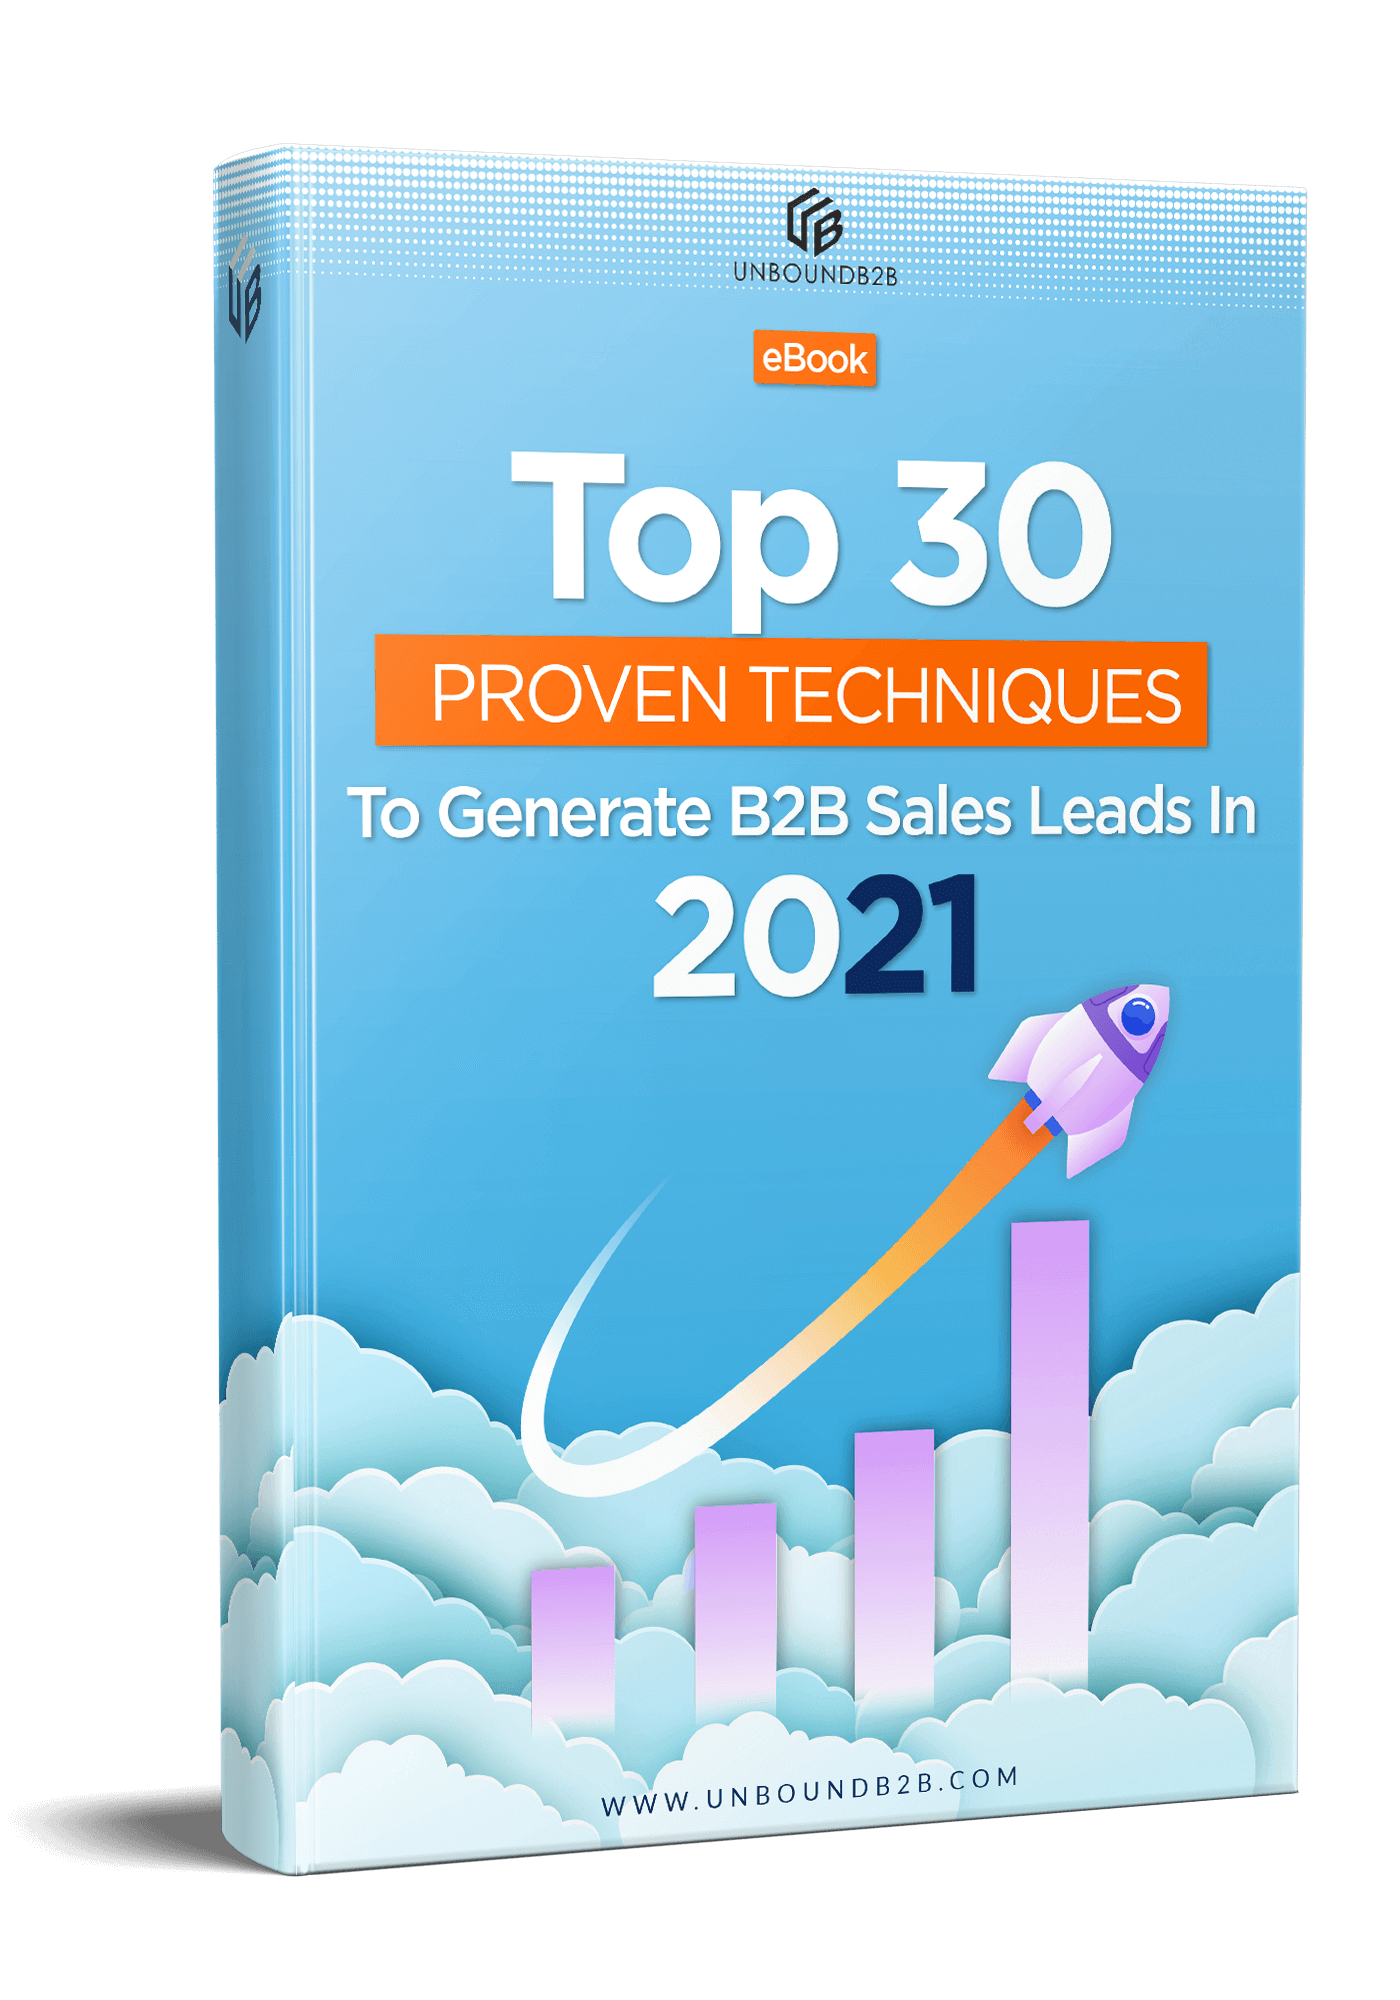 eBook- Top 30 Proven Techniques To Generate B2B Sales Leads In 2021